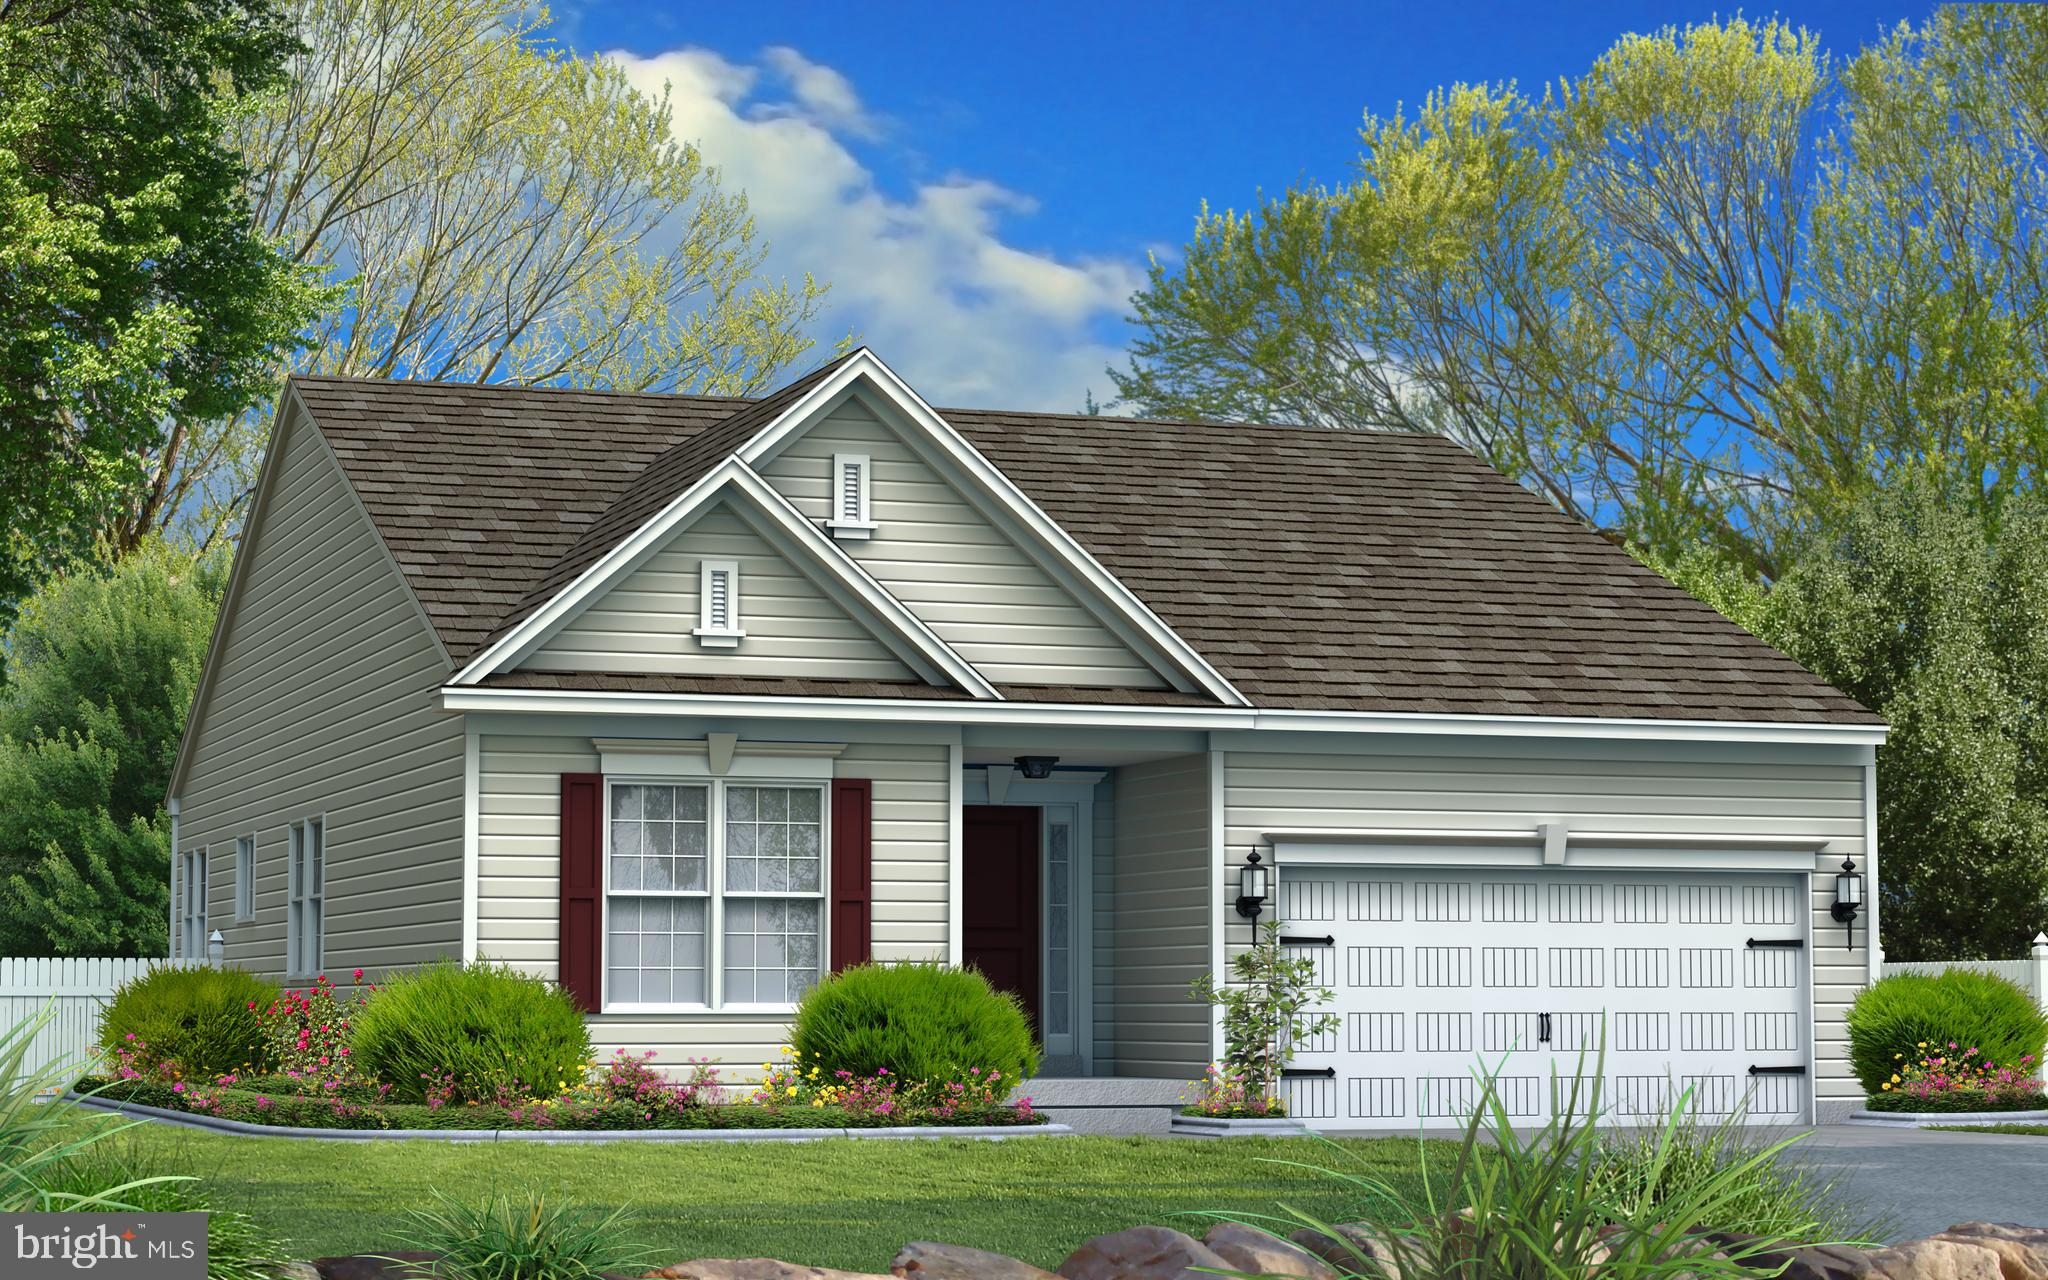 Sussex Model offered by Gemcraft Homes, currently under construction. One of Gemcraft Homes newest a